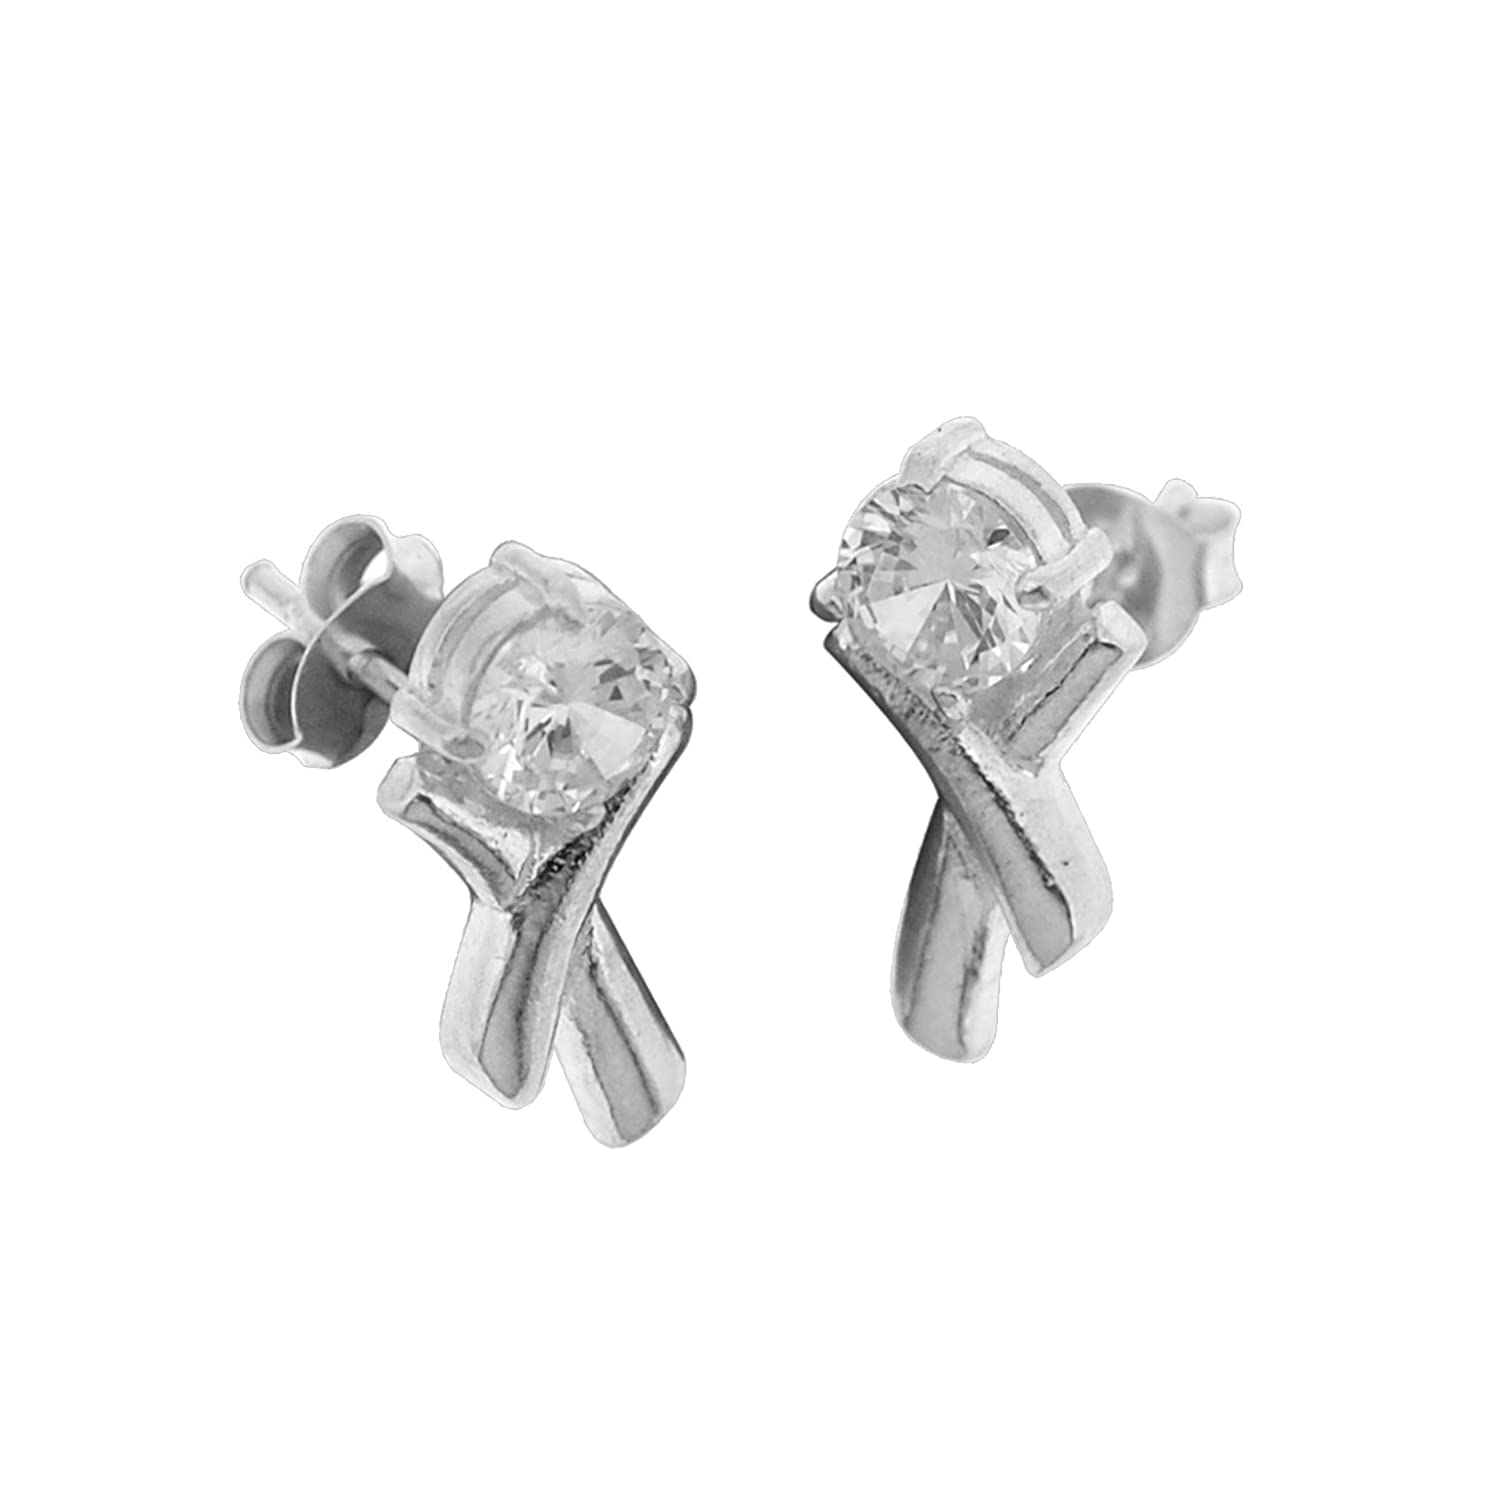 Sterling Silver Cubic Zirconia Simulated Diamond Unique Design Stud Earrings